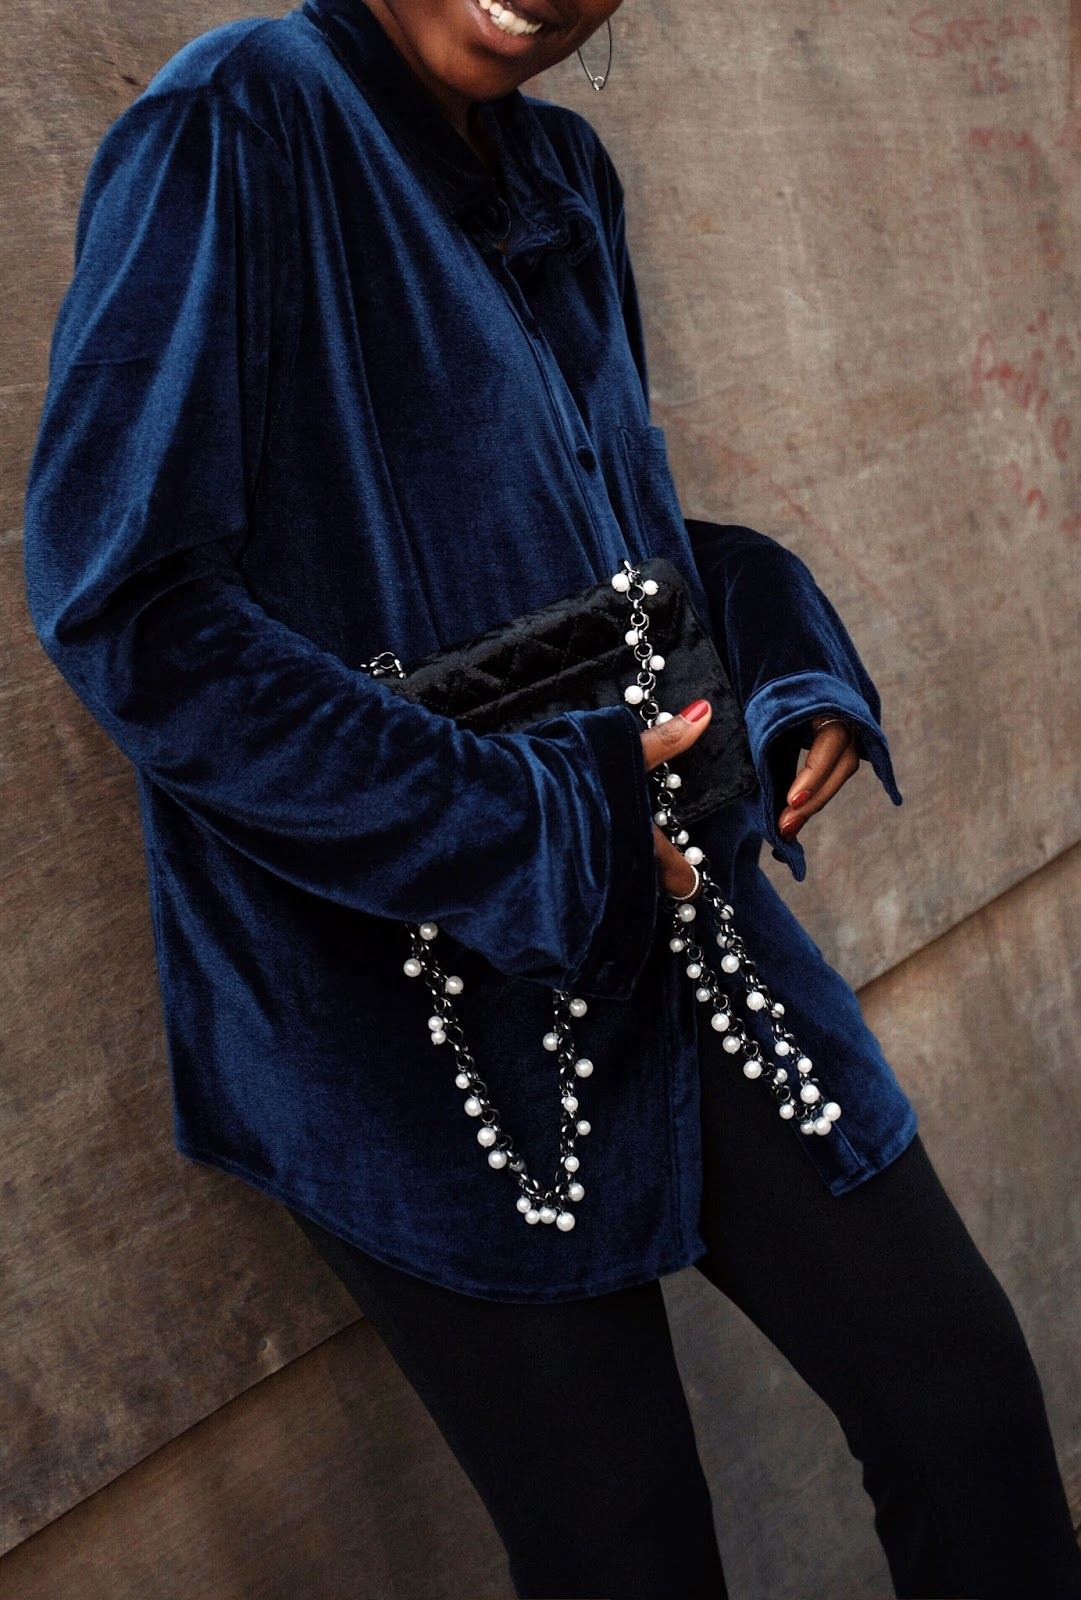 Navy Blue Velvet LPA Shirt Via REVOLVE, Black Velvet ASOS Cross Body Bag, Black Flared Frilly Zara Trousers, Black Pointed Topshop Ankle Boots